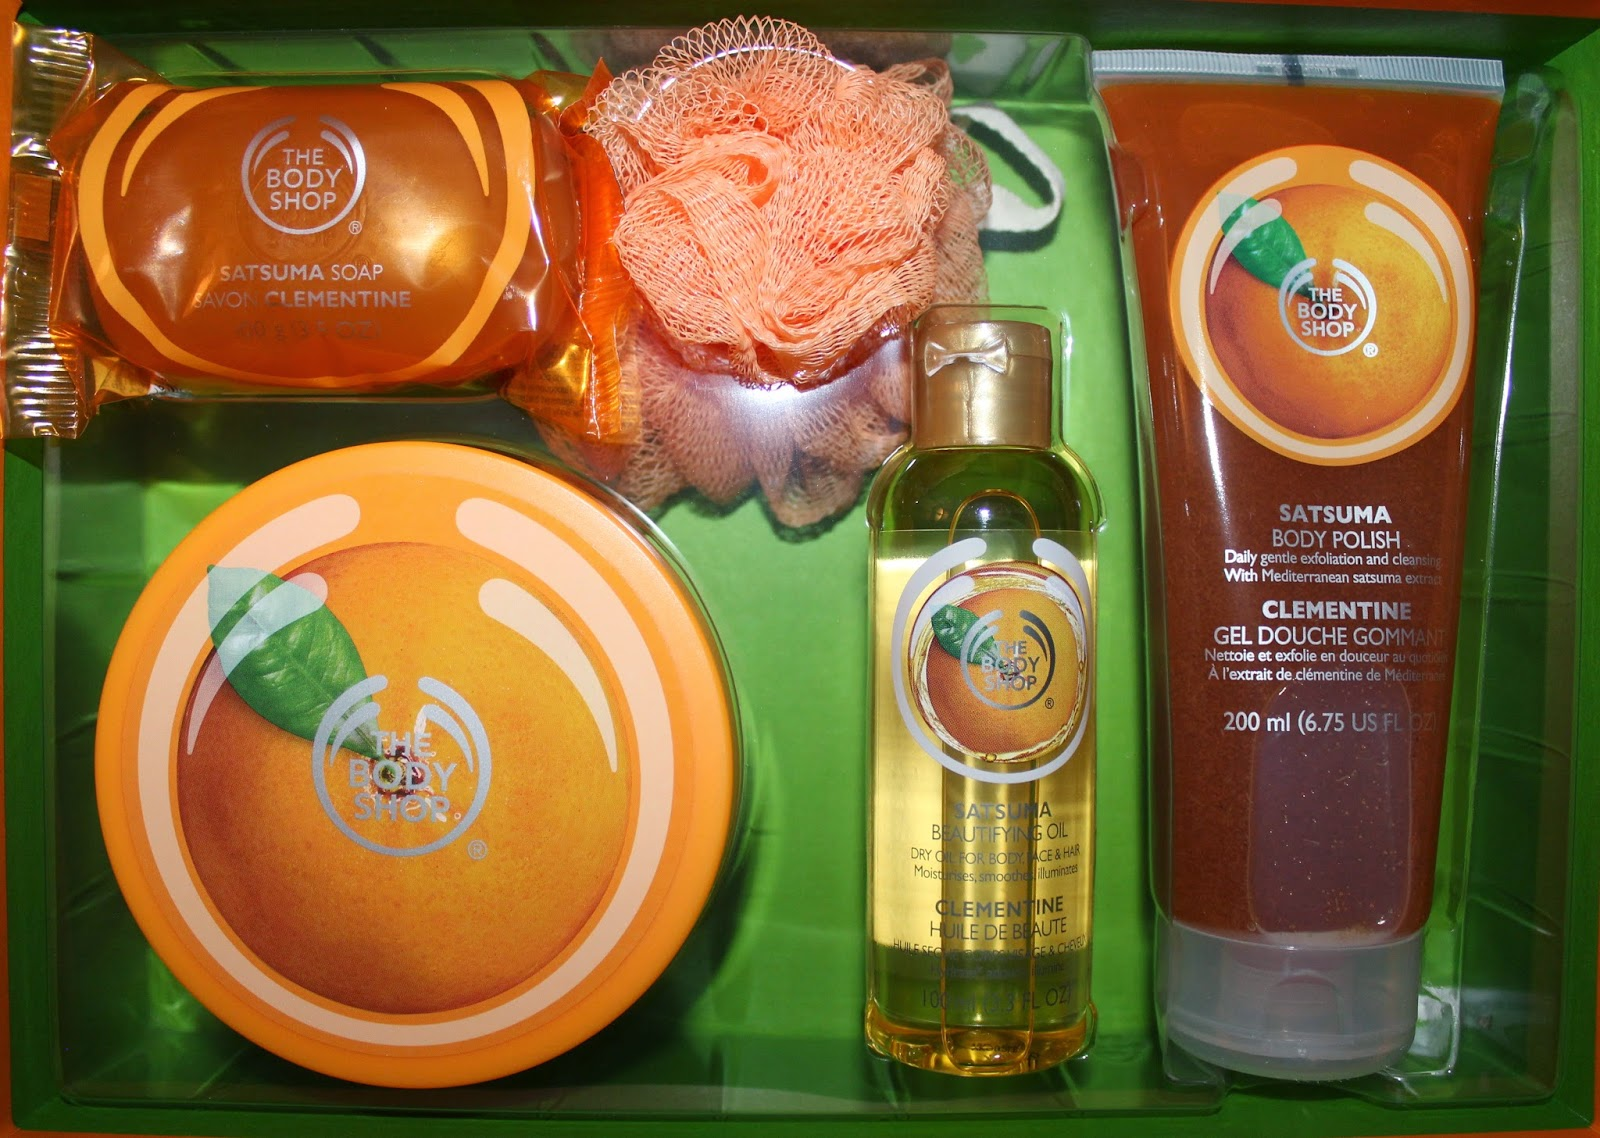 The Body Shop's Sastuma Premium Selection